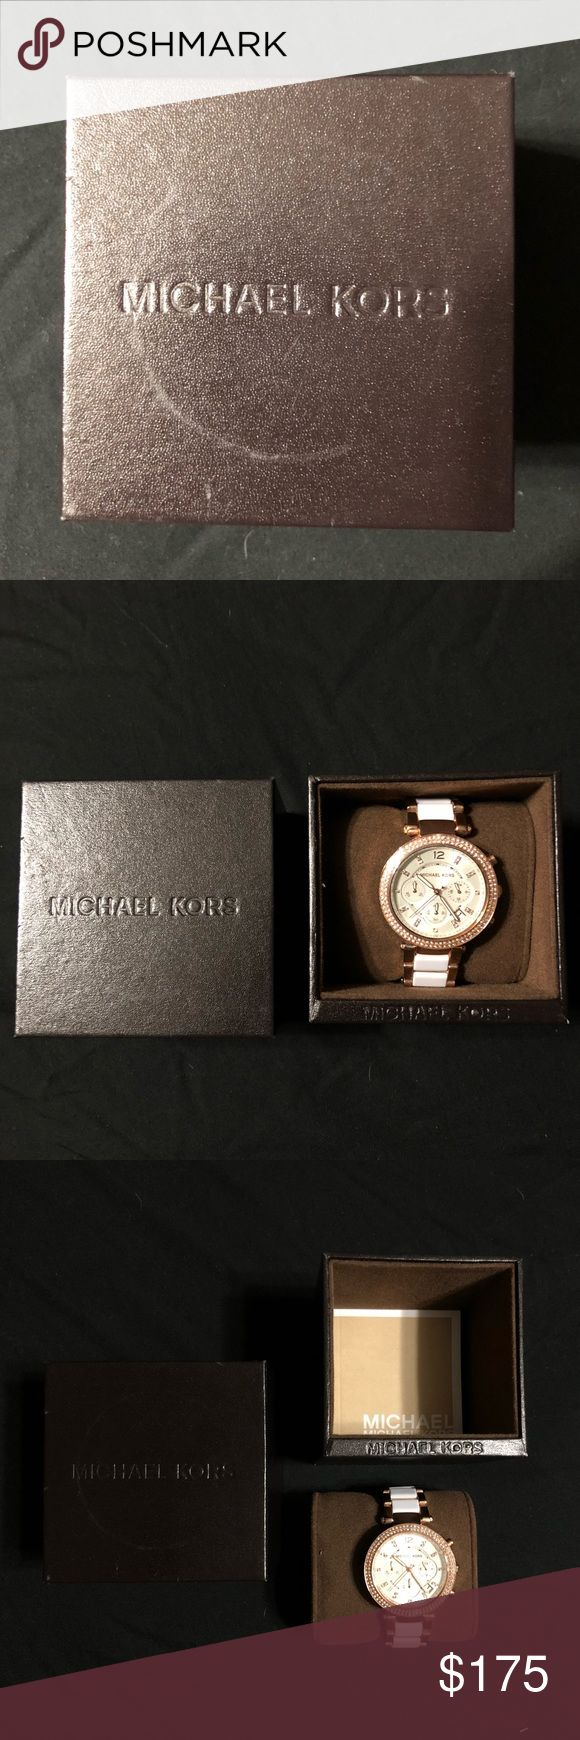 Michael Kors MK5774 Parker RoseGold White Acetate • Oversized Watch  • Push Clasp  • 39mm Case   Brand new Michael Kors watch. Never been worn or adjusted. Michael Kors Jewelry